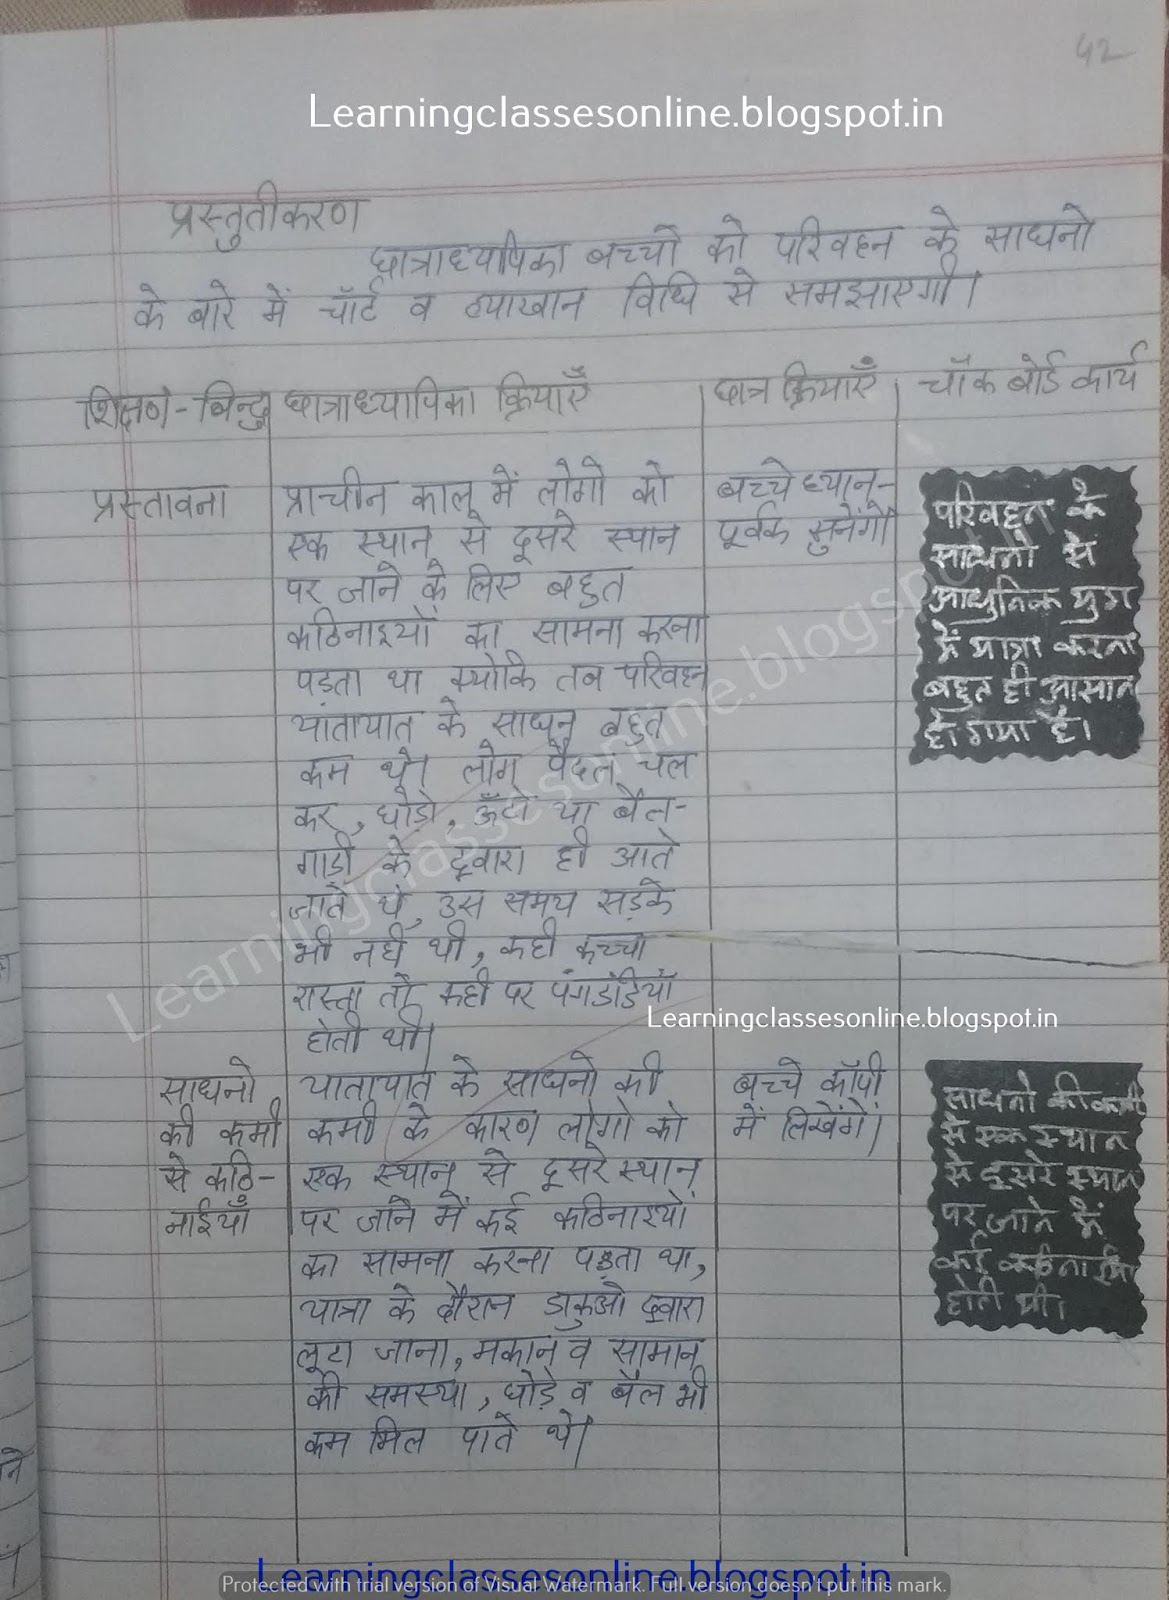 lesson plan of social science for b ed, lesson plan for class 10 social science cbse,